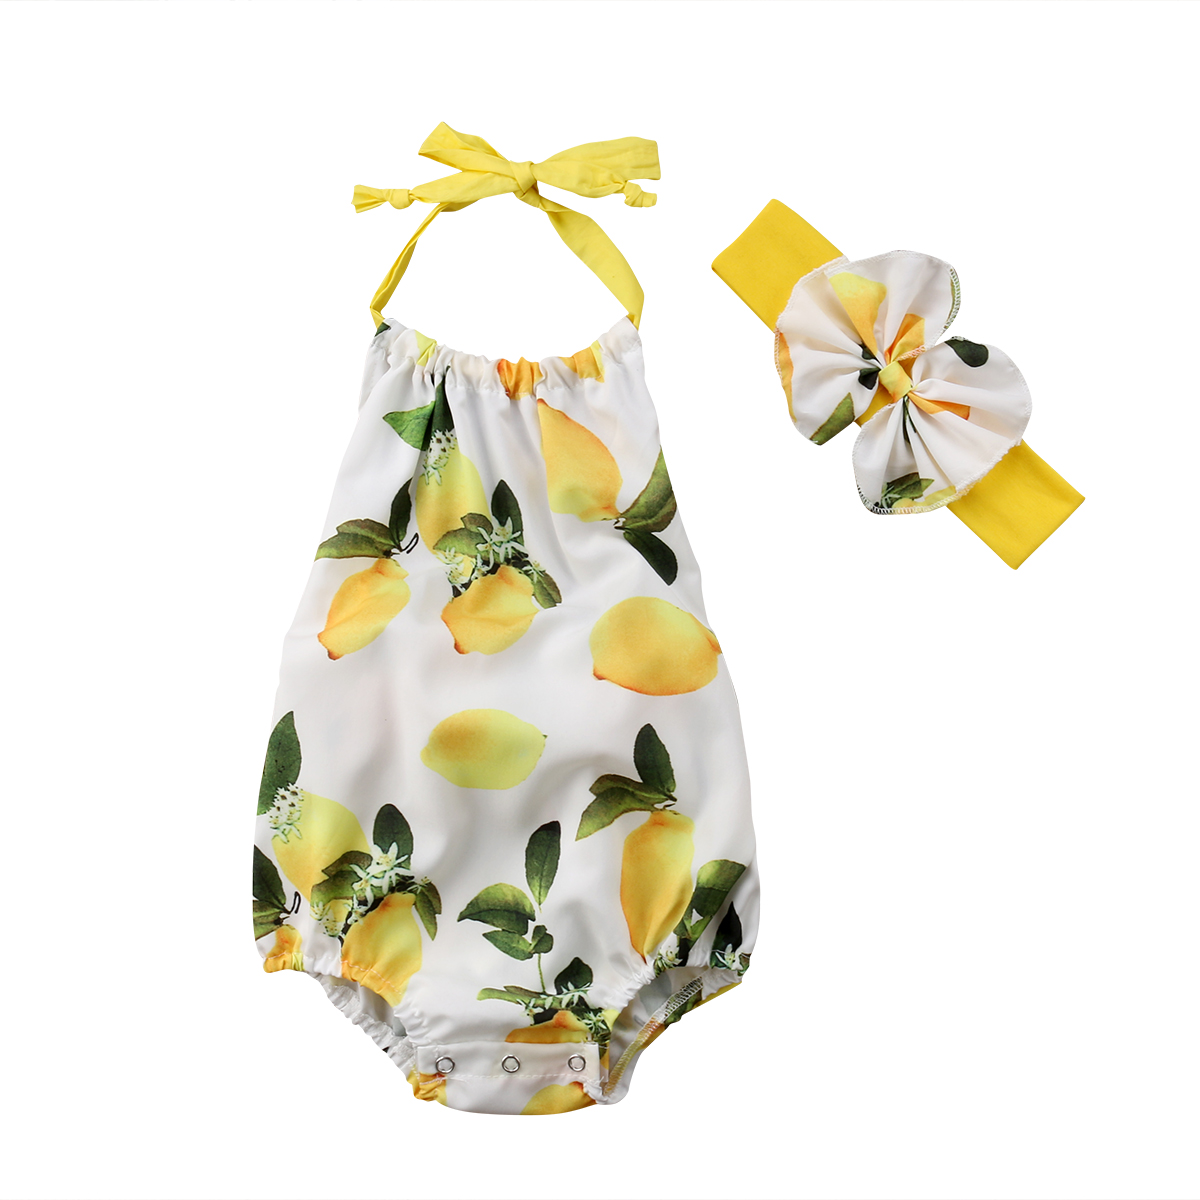 Lovely Newborn Kids Baby Girls Clothes Lemon Print   Romper   Sleeveless Backless Jumpsuit 2PCS Outfit Bow Tie Sunsuit Set